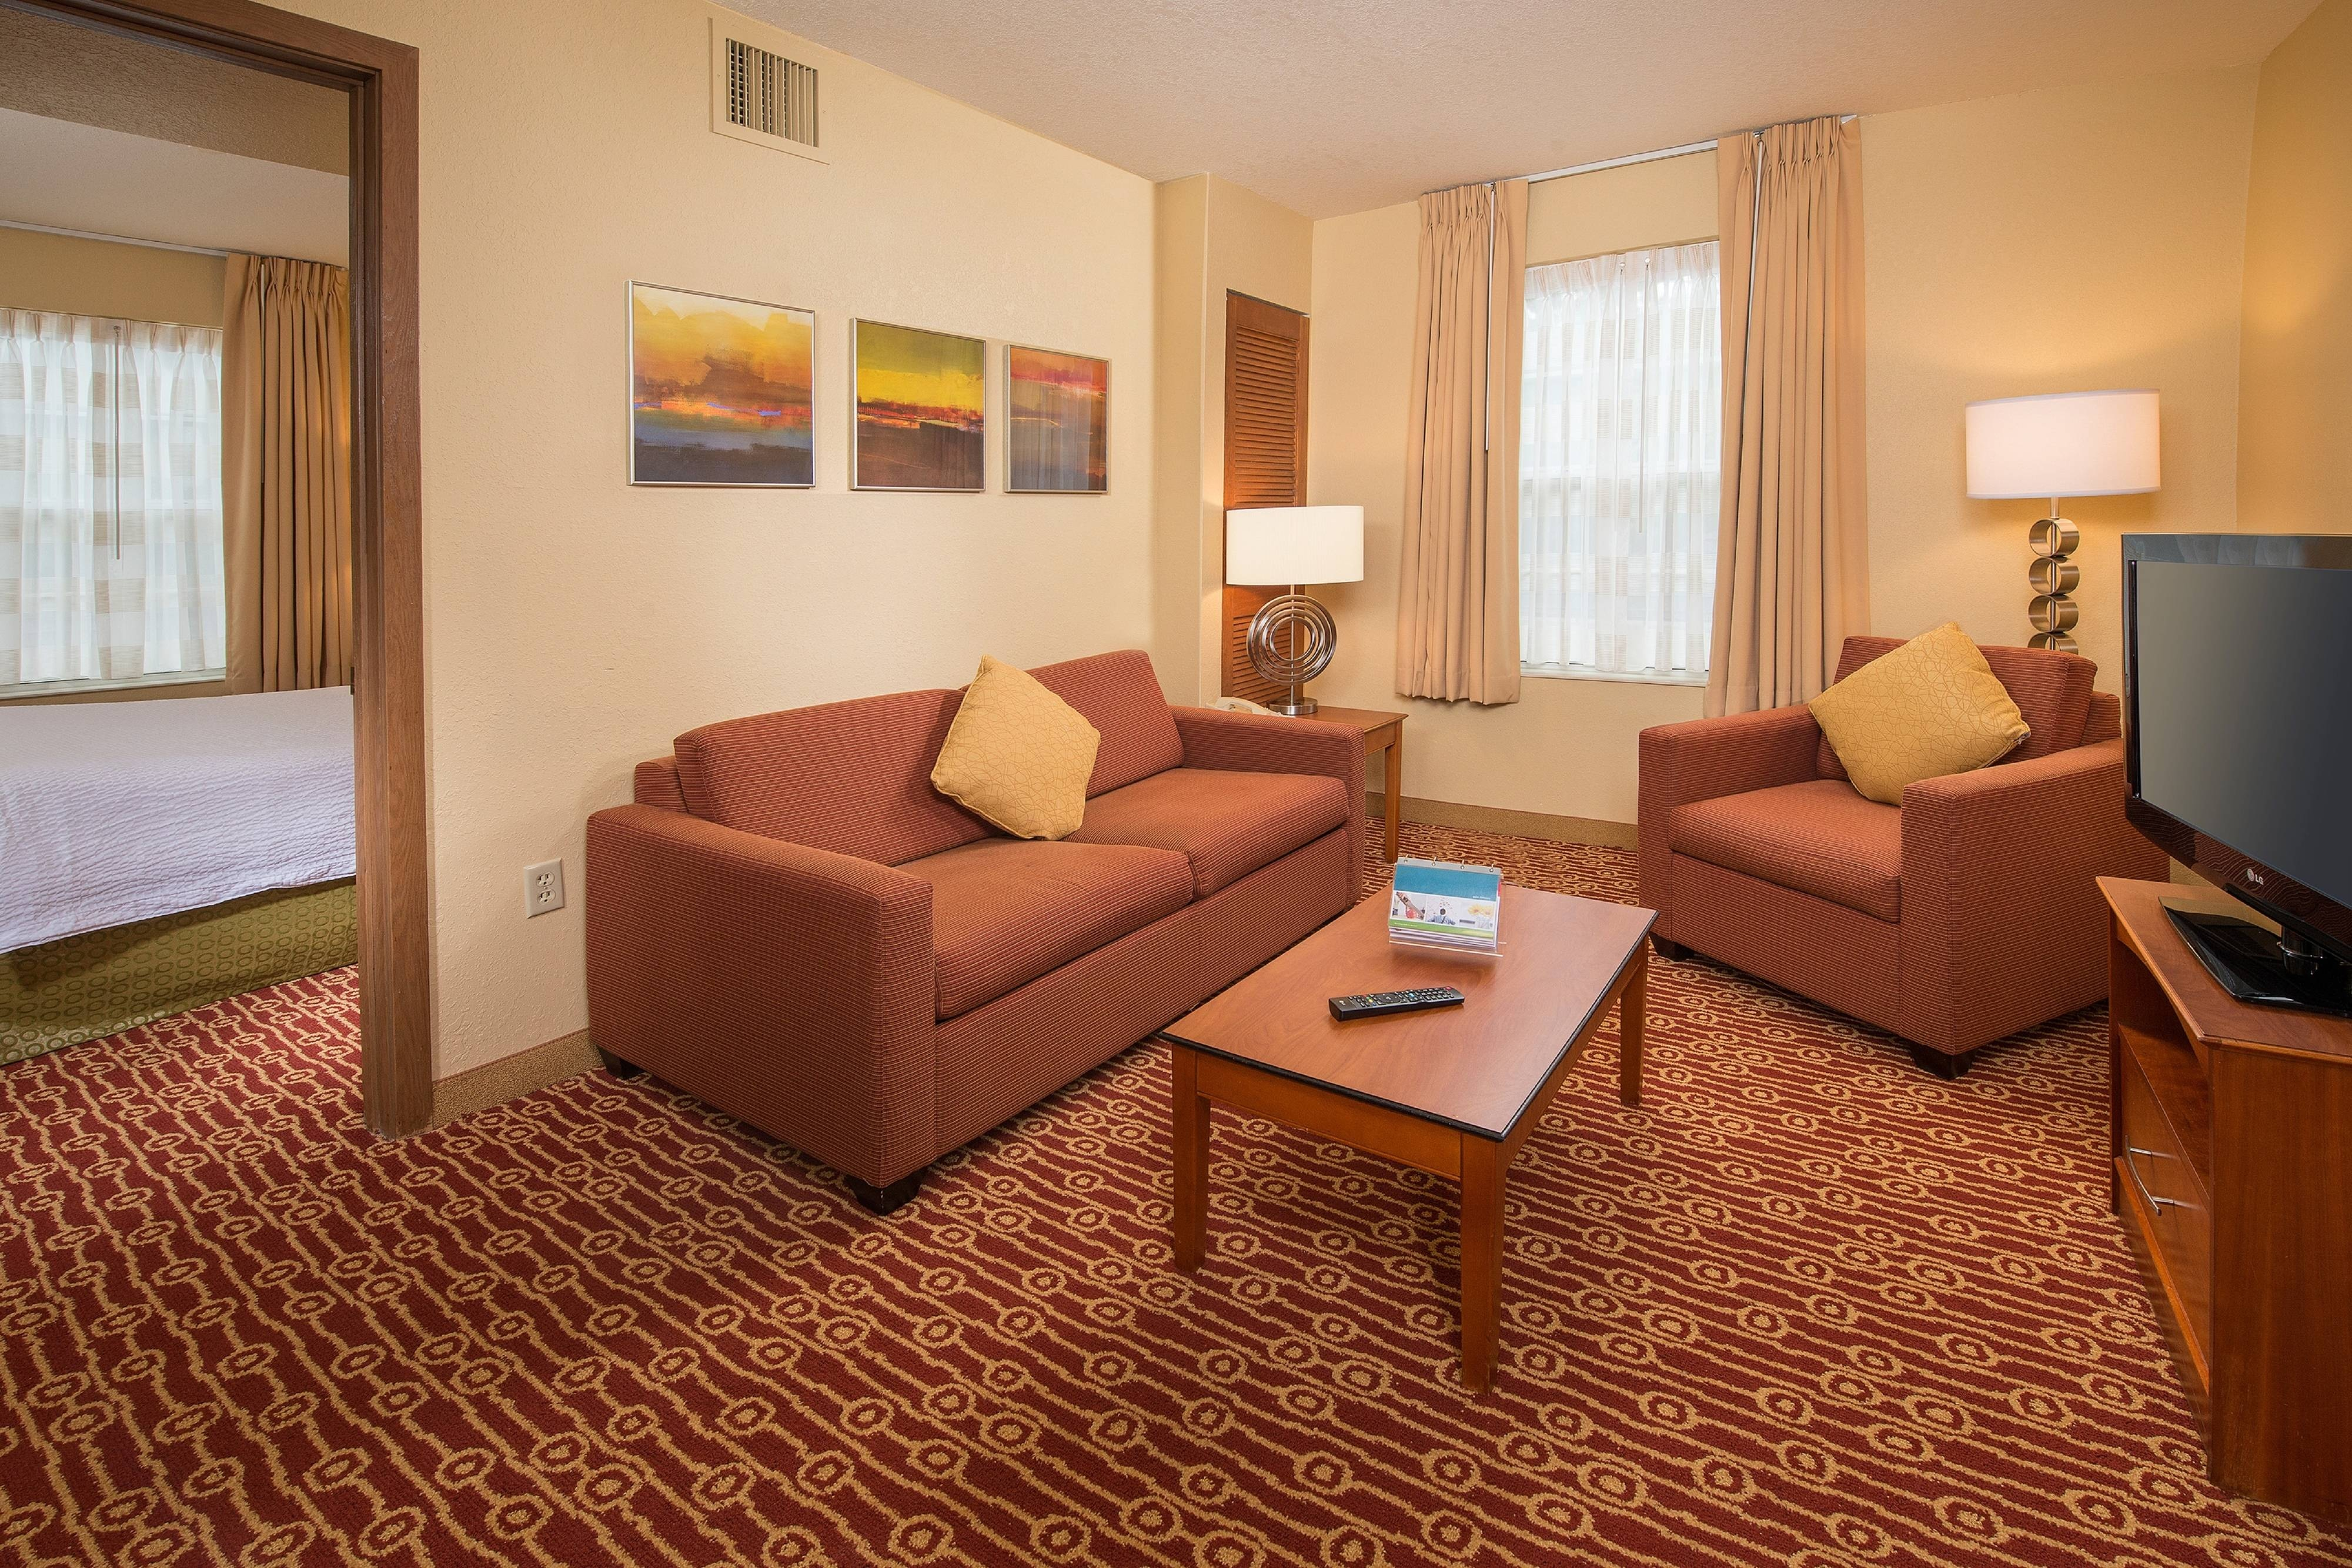 Extended stay hotels in richmond va towneplace suites richmond for 2 bedroom hotel suites in richmond va